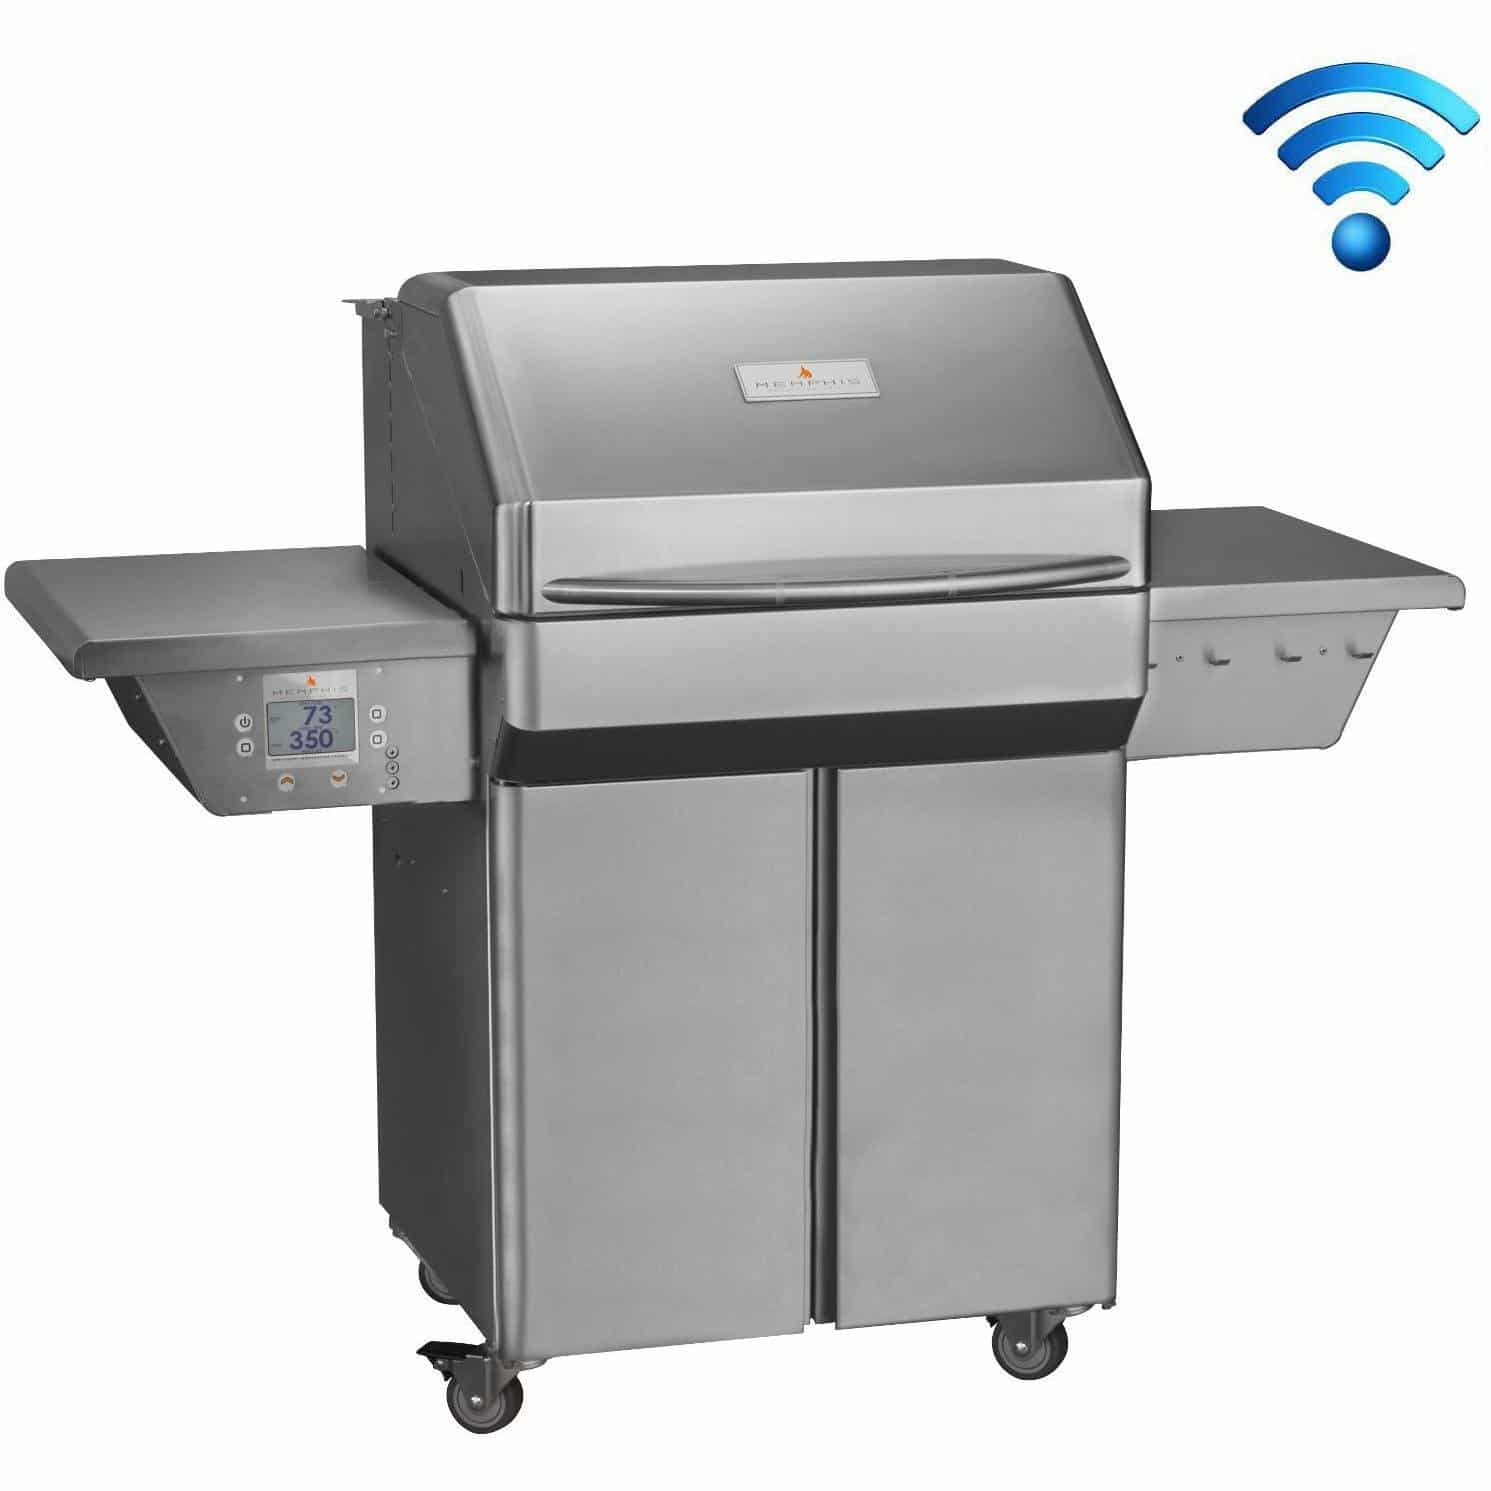 Memphis Grills Pro Pellet Grill With Built-In Wi-Fi